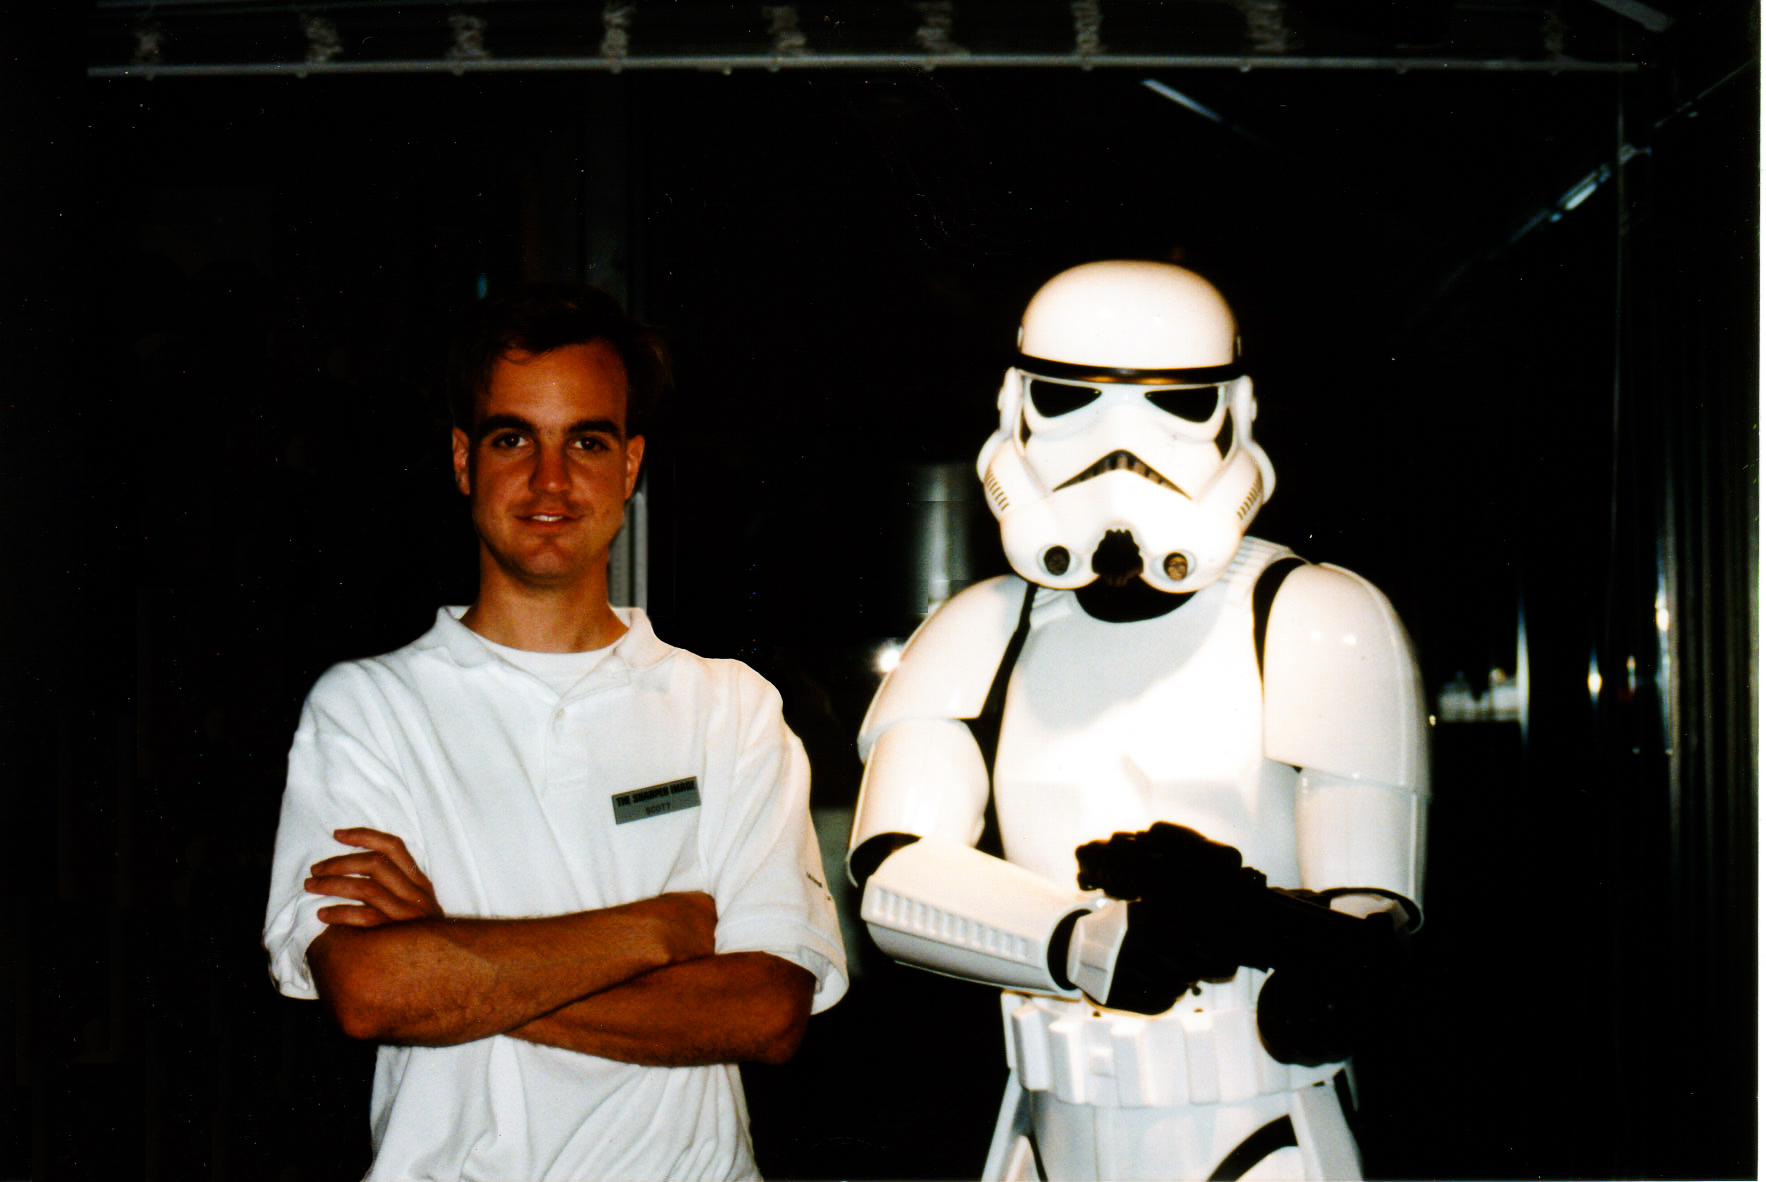 Me, with Stormtrooper